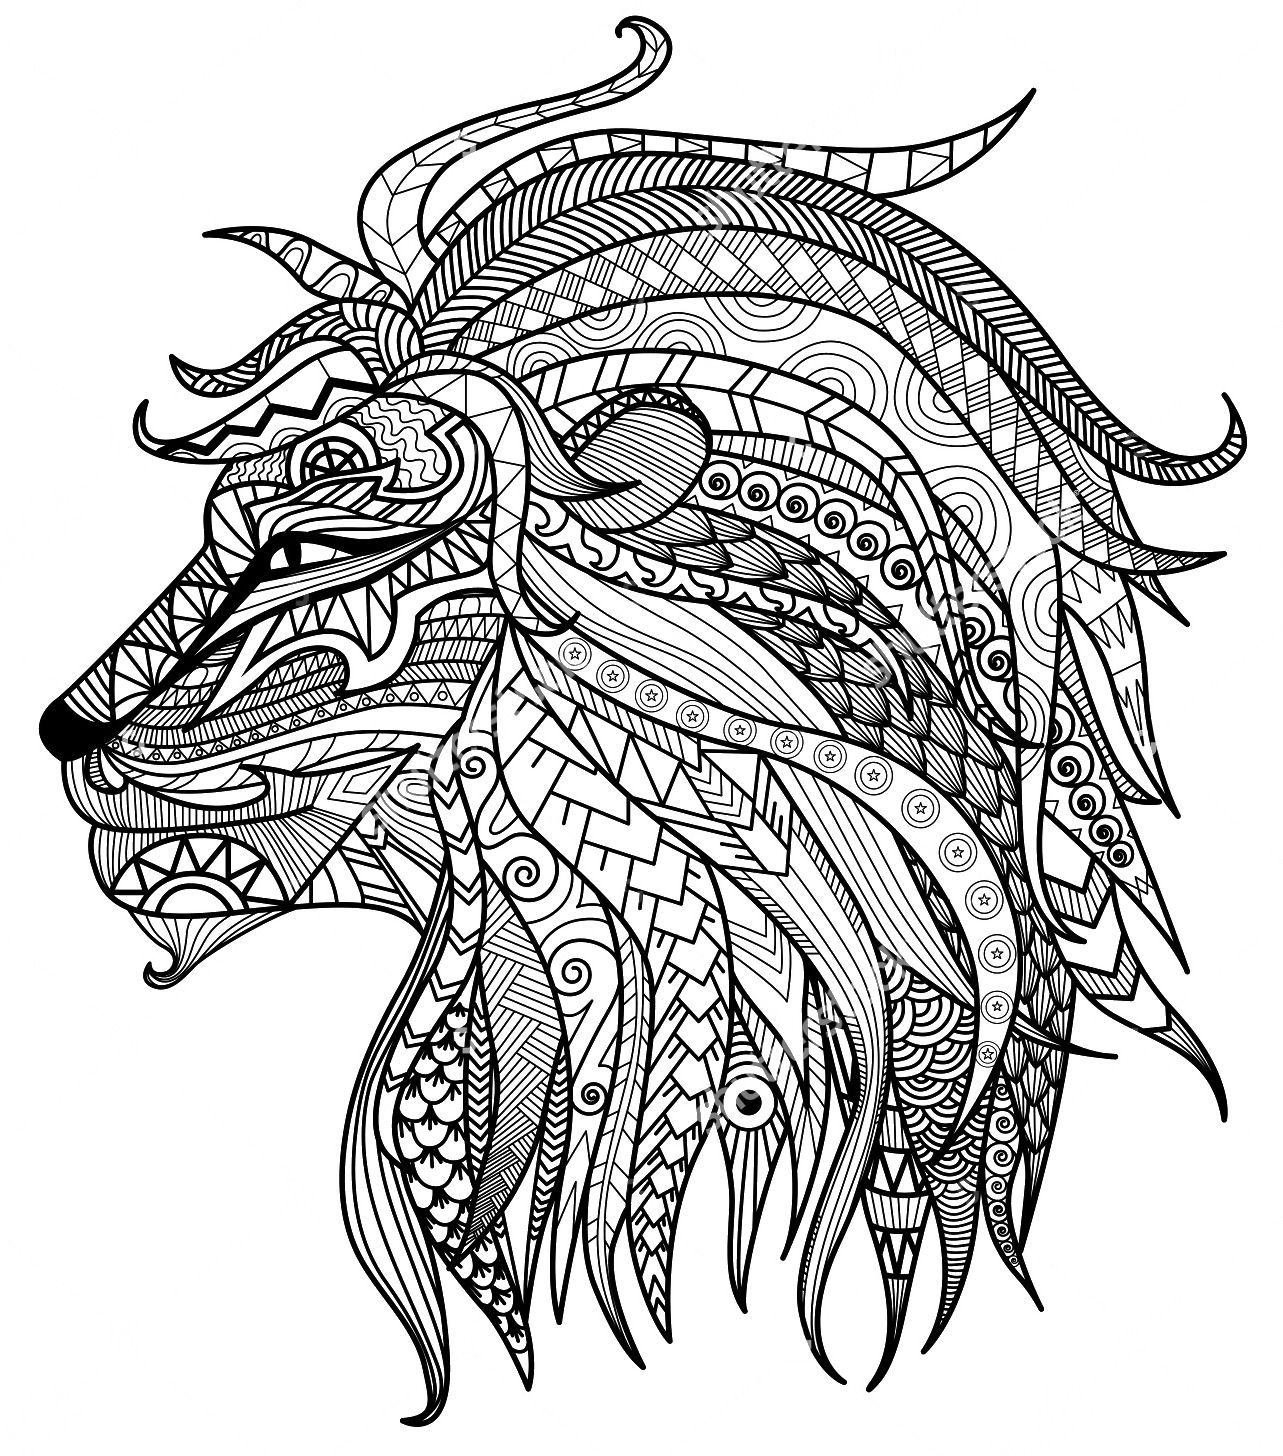 Adult Coloring Pages Lion Head Animal Doodles Animal Coloring Pages